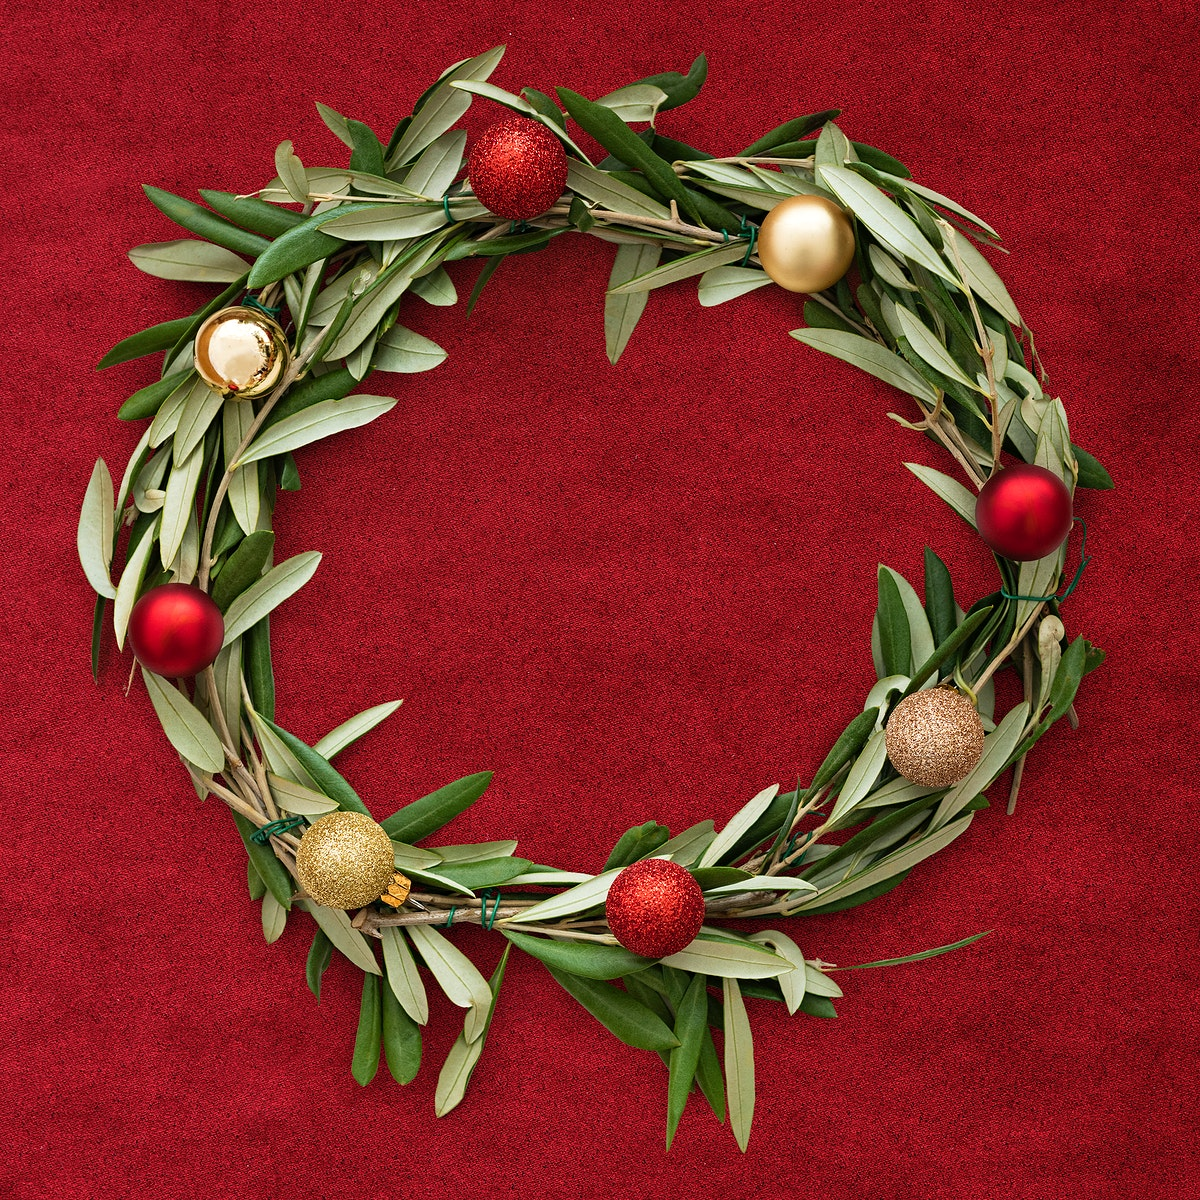 Handmade Christmas wreath decoration on a red fabric background